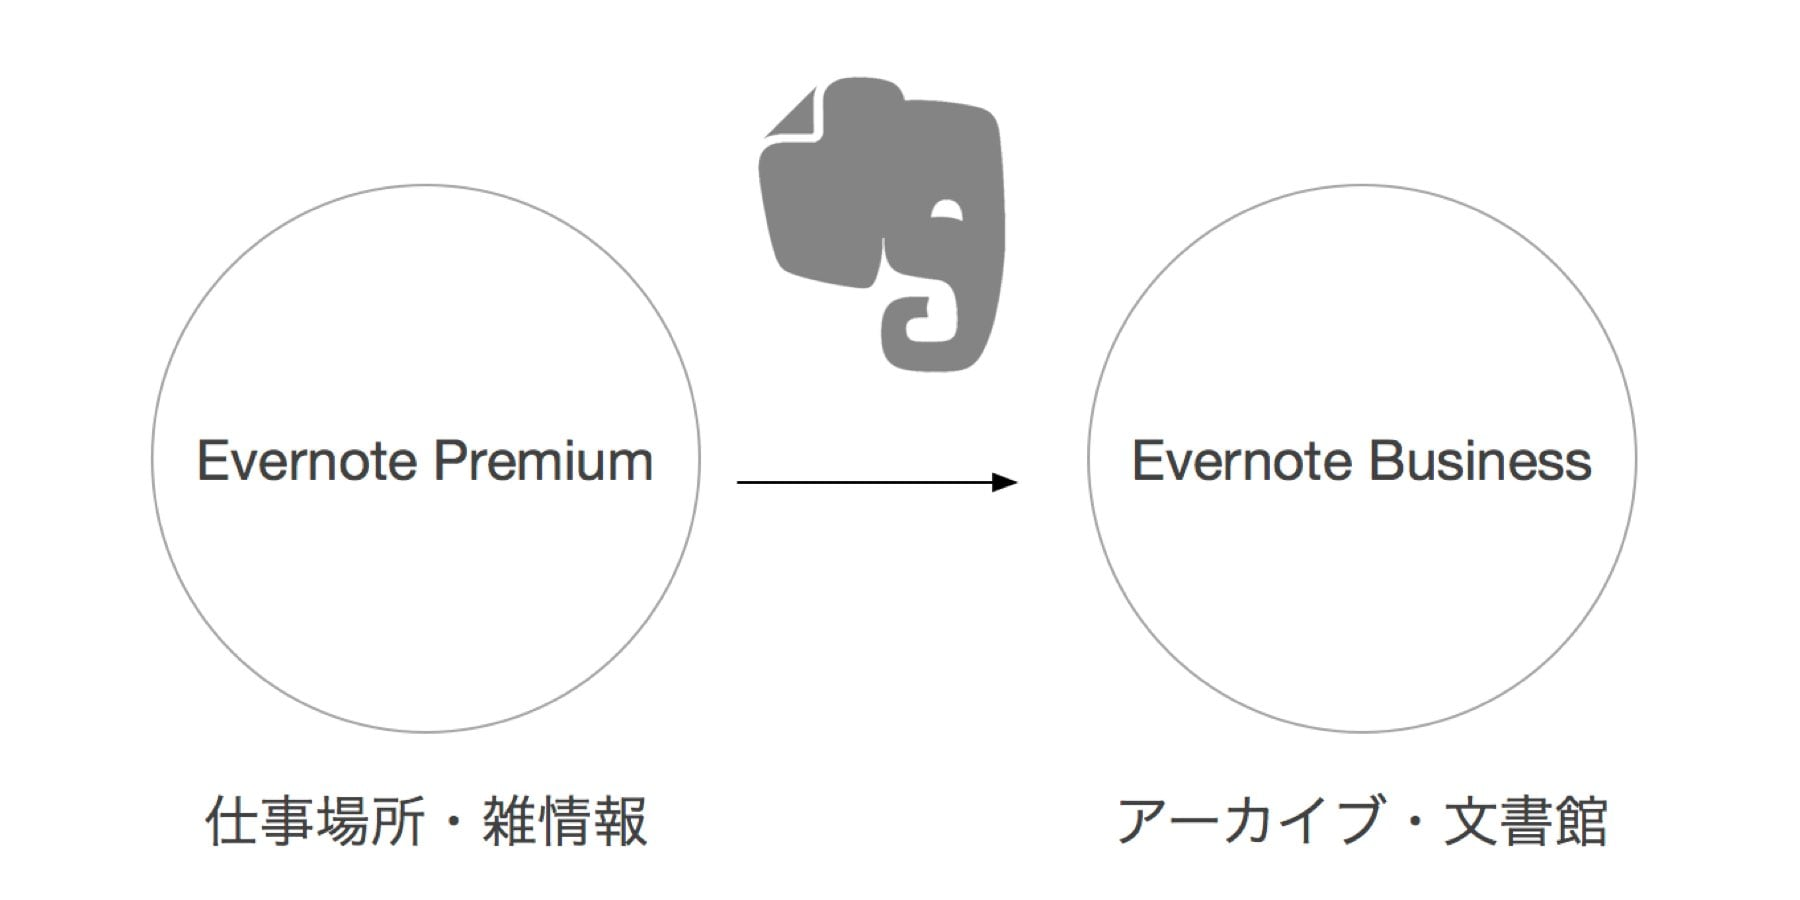 evernote-personal-business.jpg